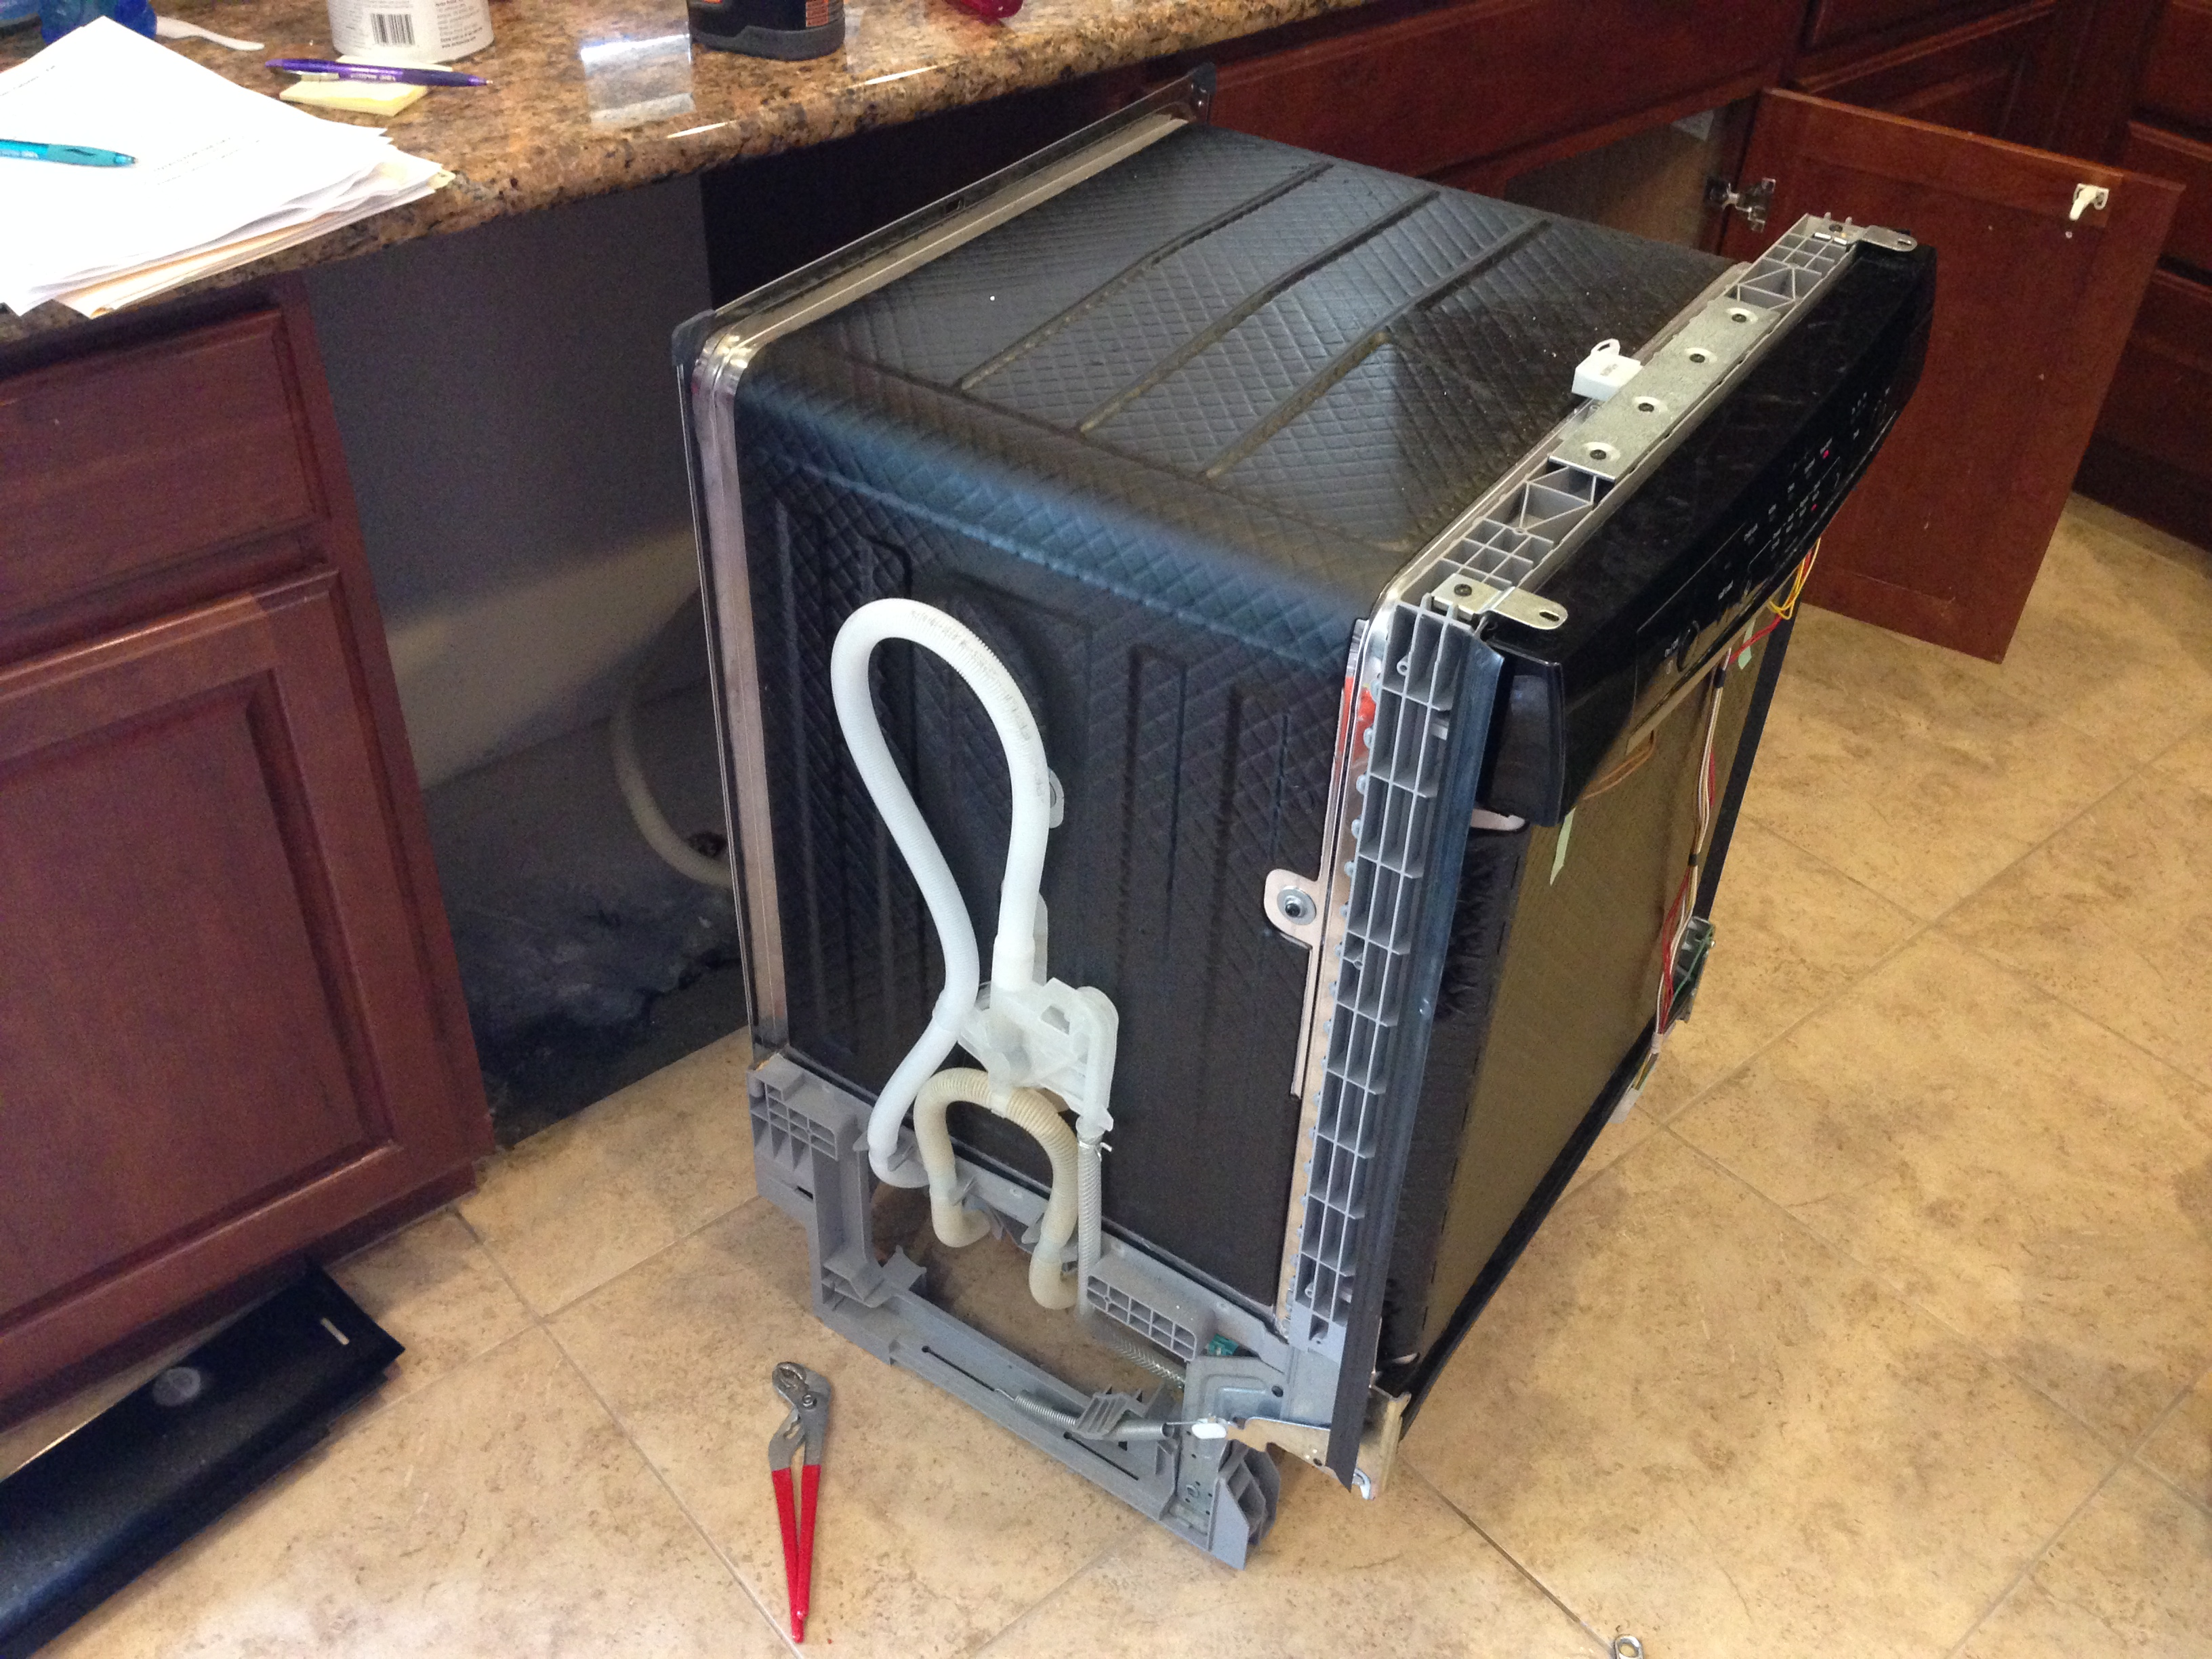 Bosch Dishwasher Not Draining Leaving Standing Water